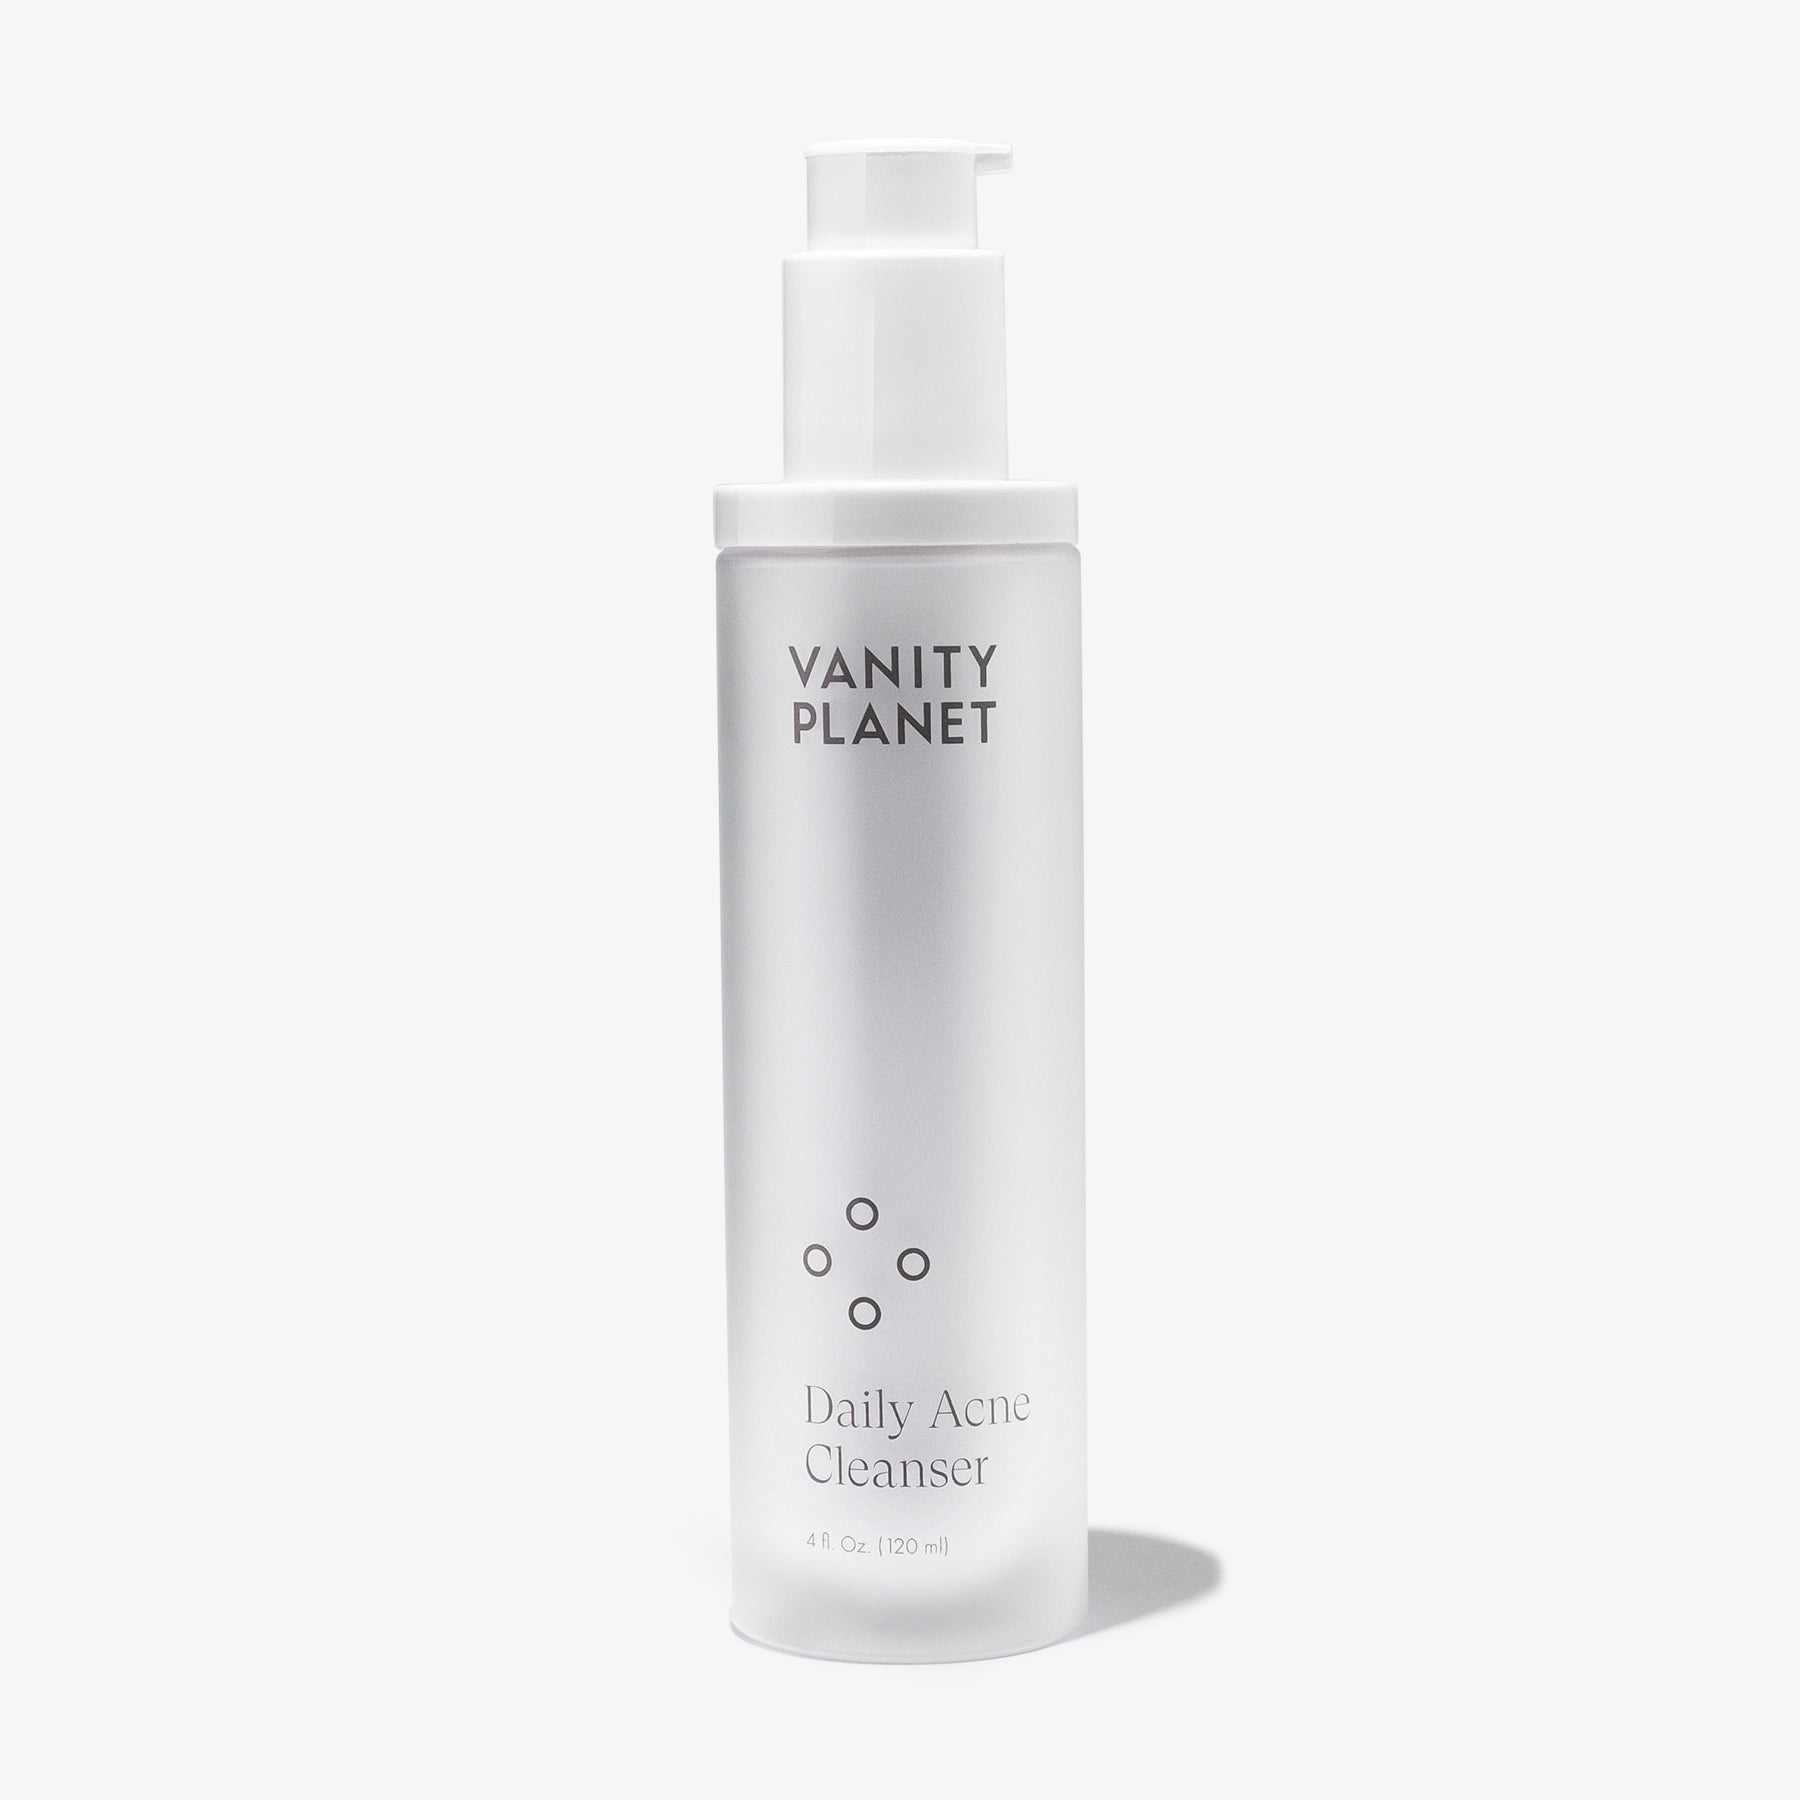 Daily Acne Cleanser Vanity Planet